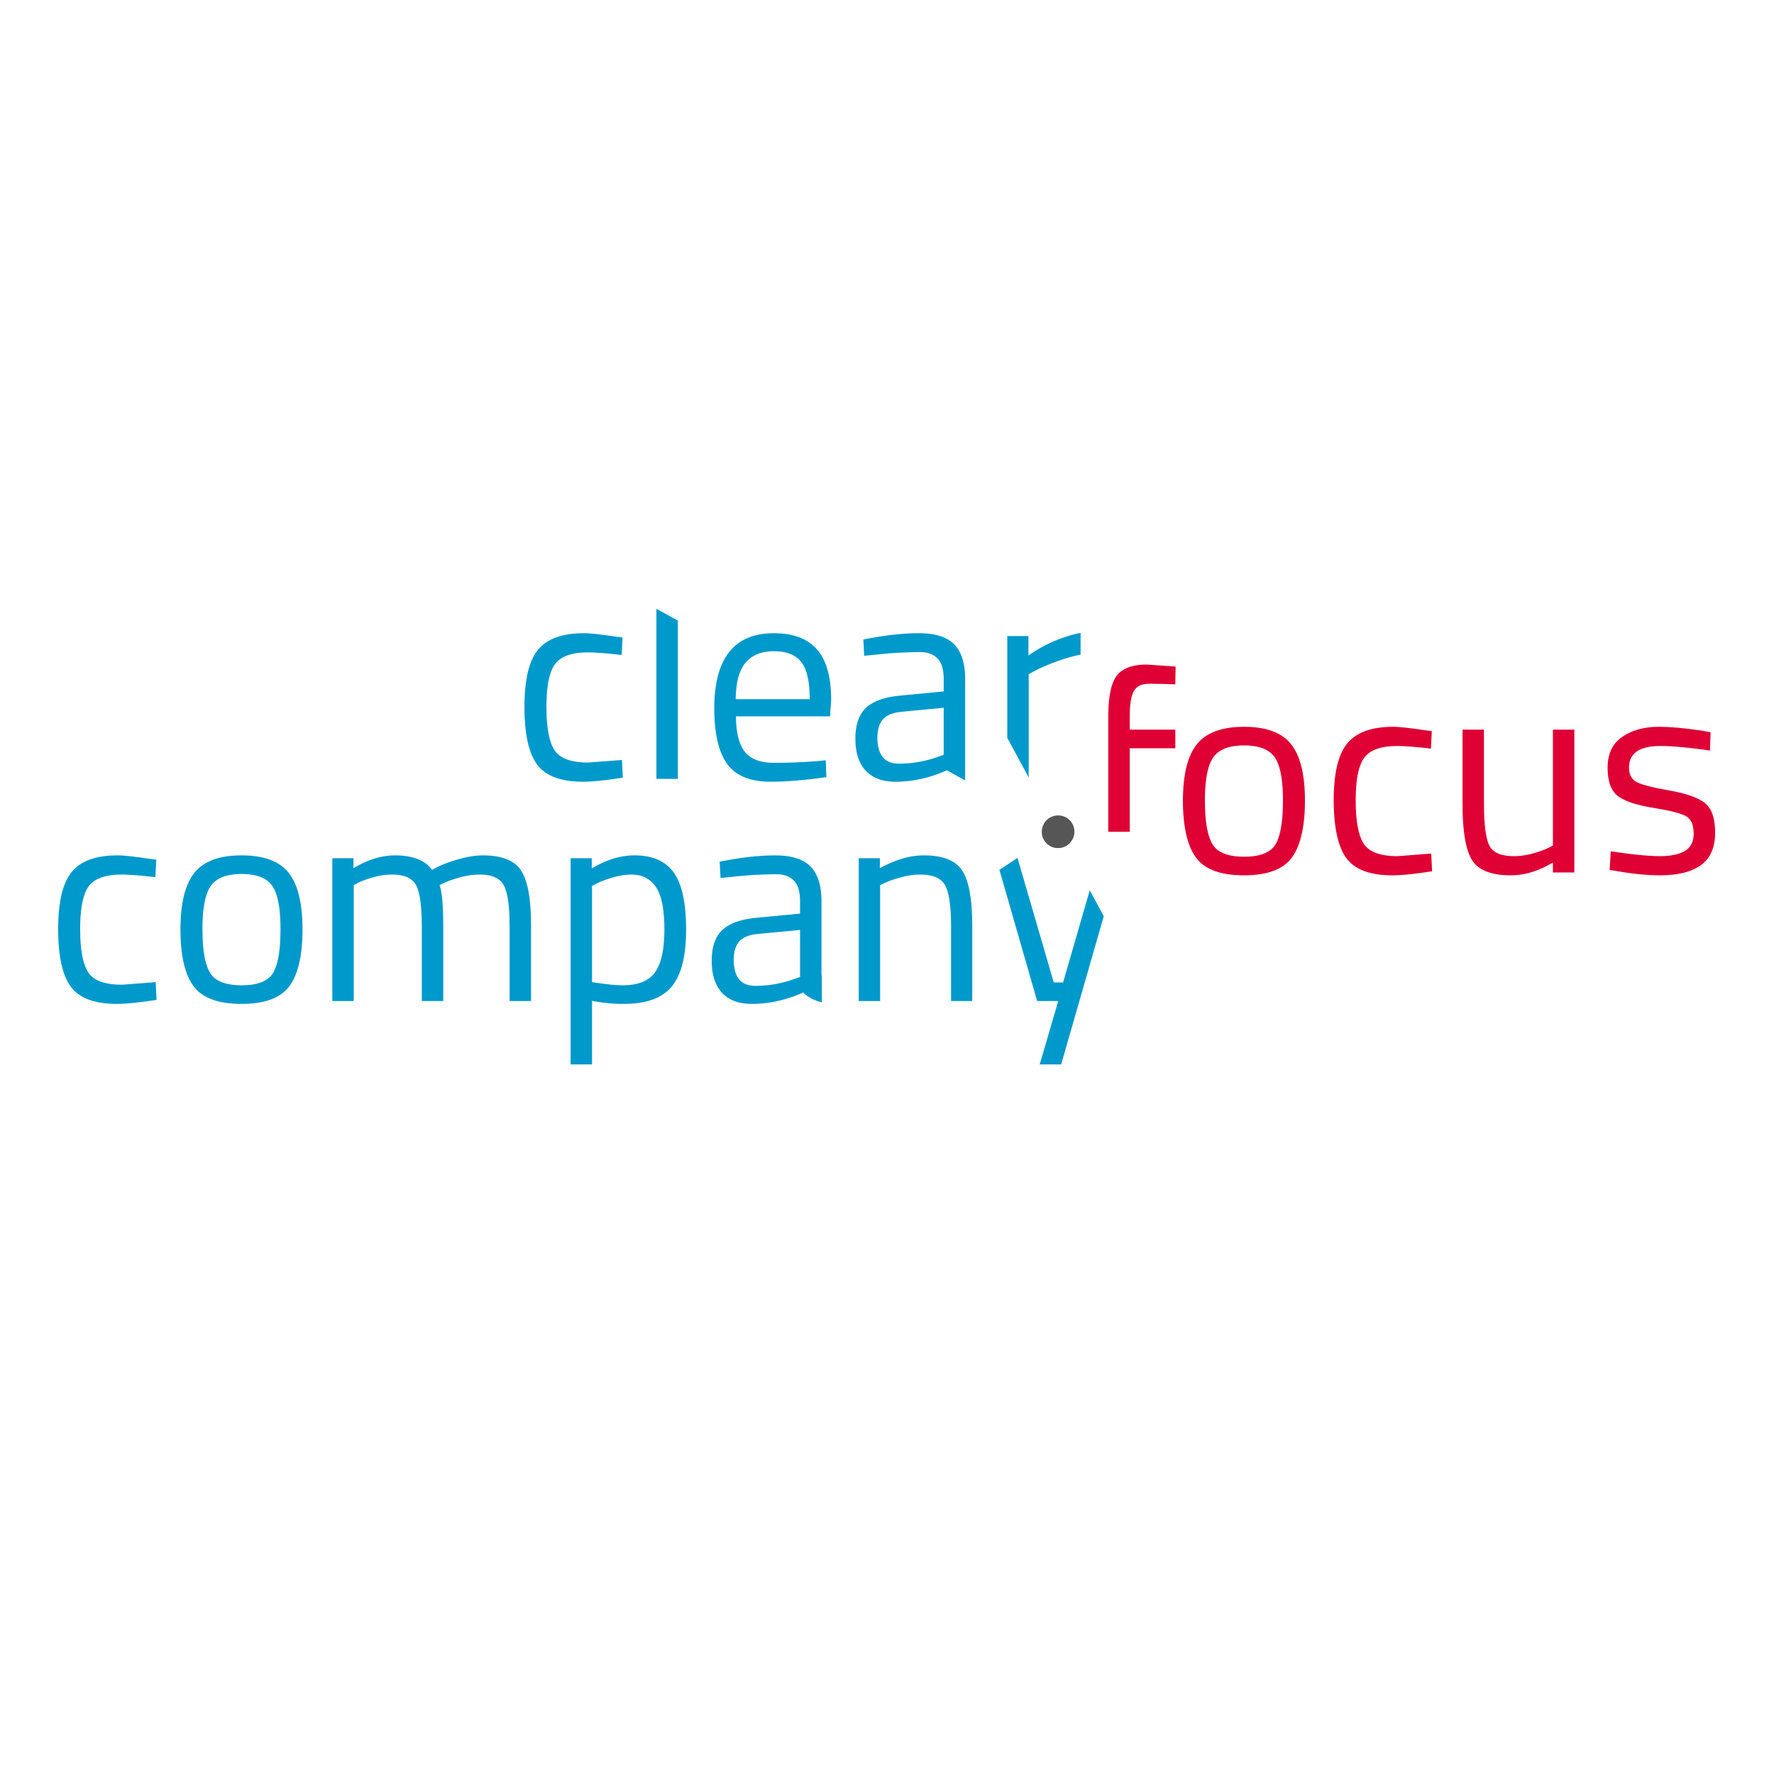 Clear Focus Company